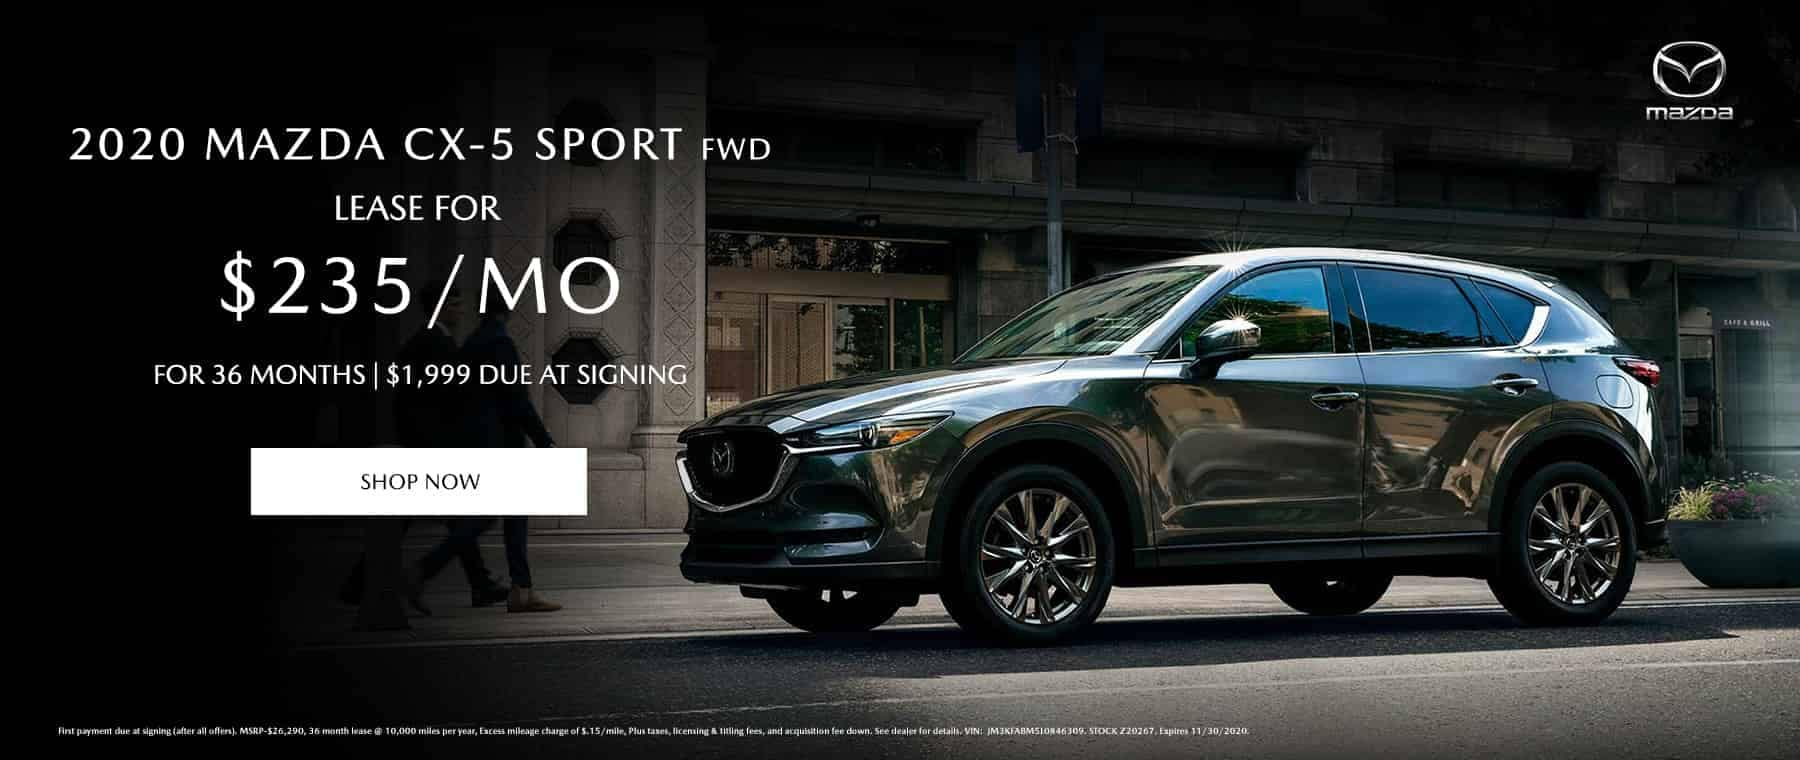 New CX-5 for $235 per month